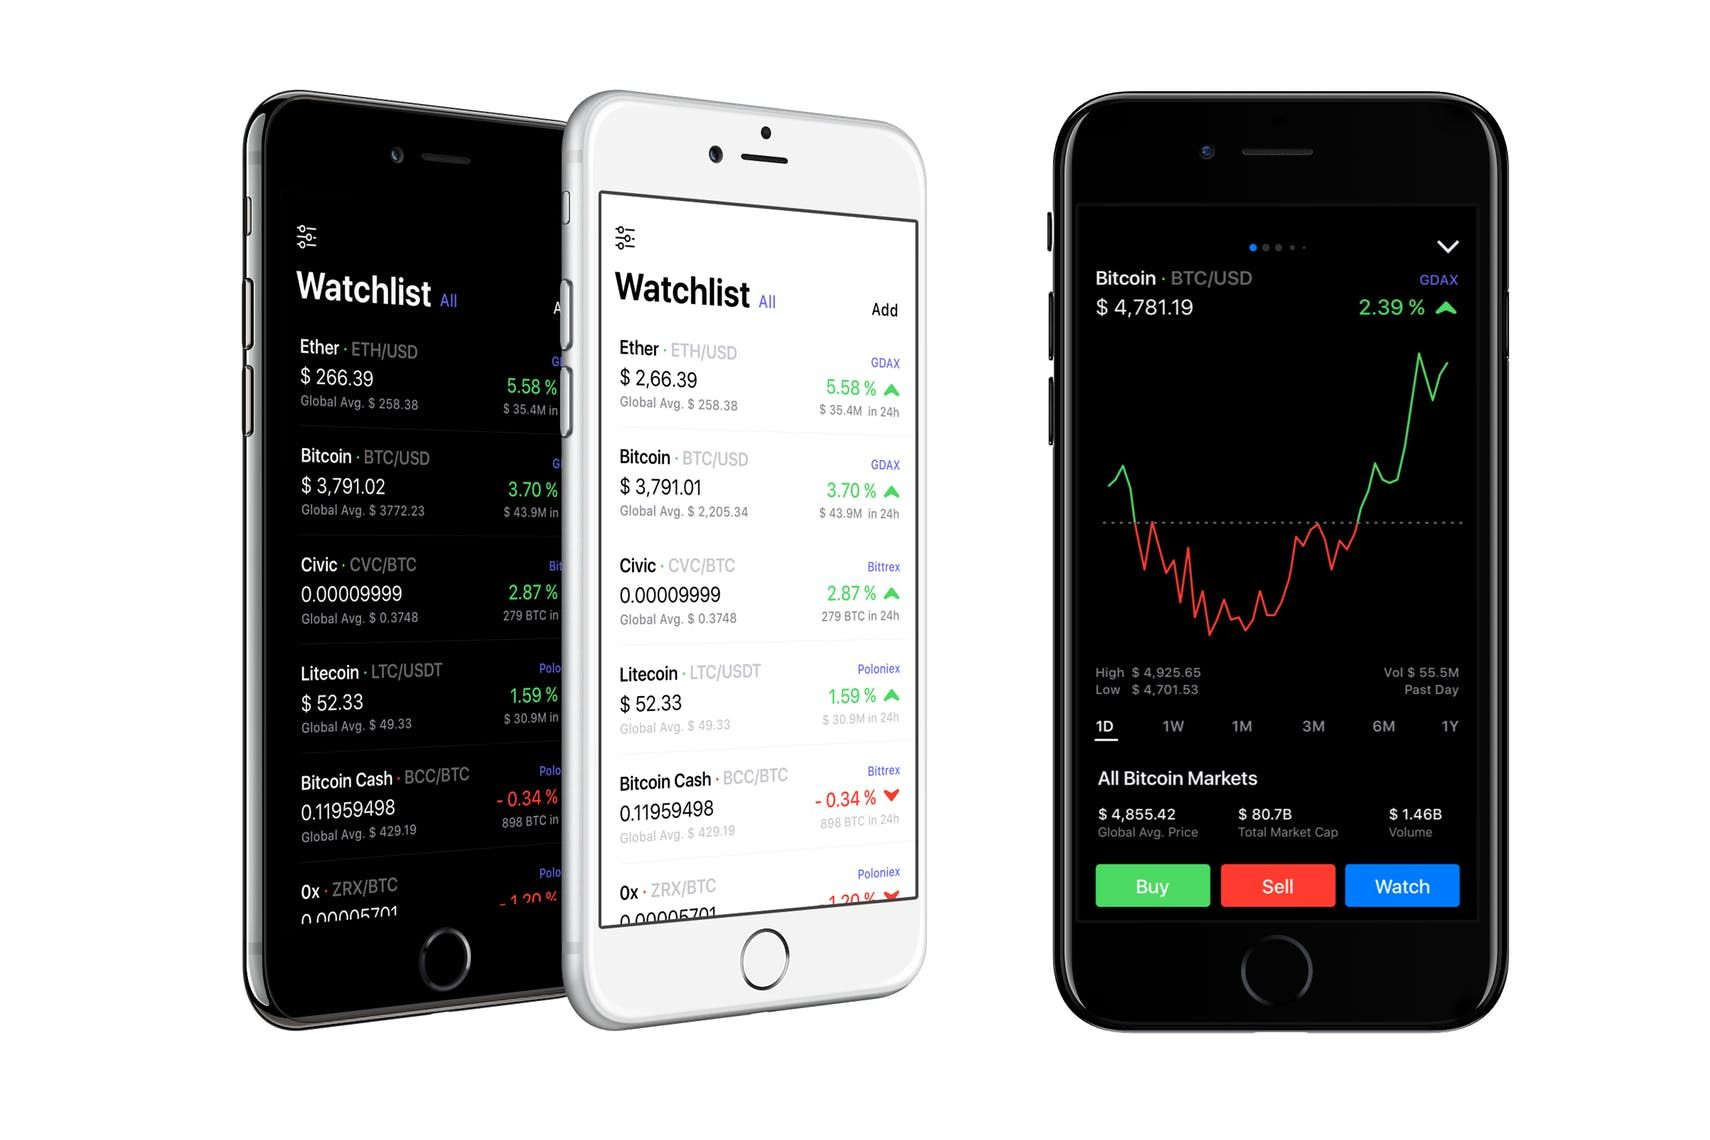 Coindex Stay up to date with the crypto markets you want